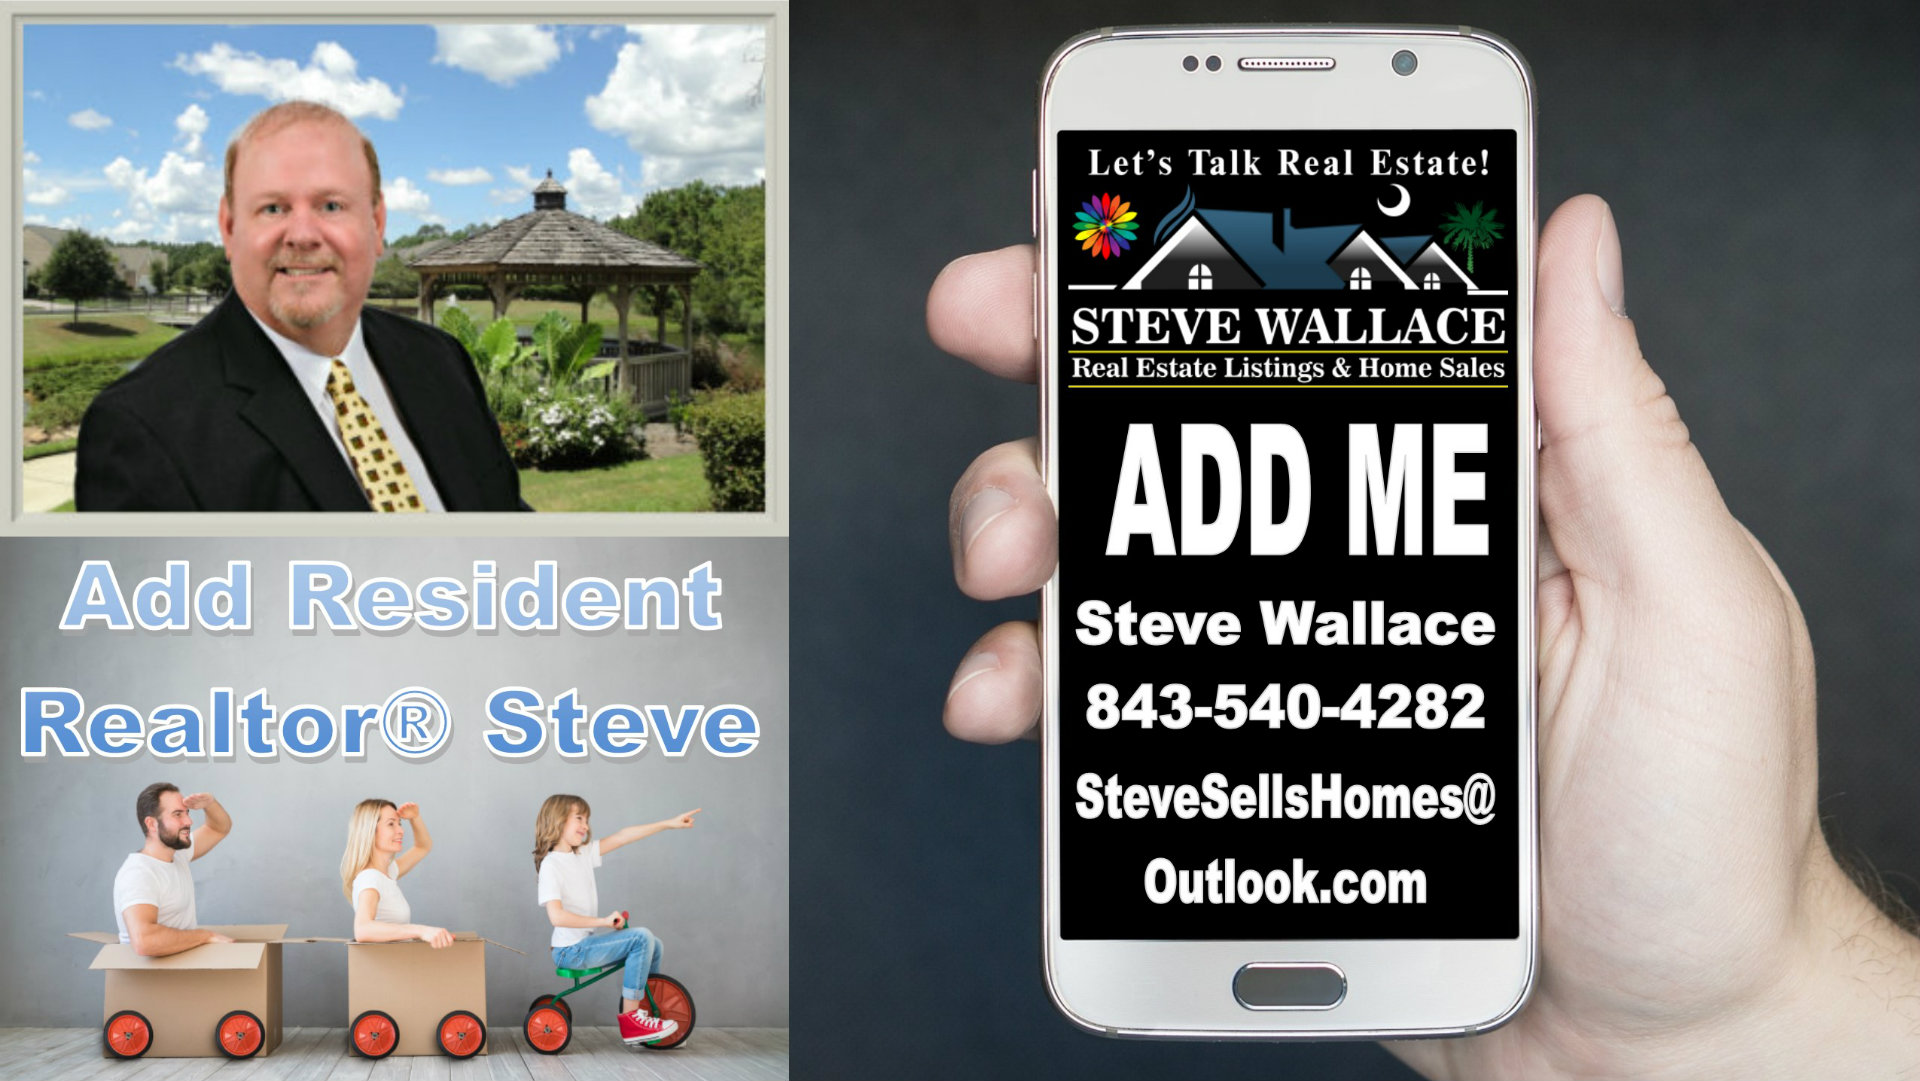 Add SC Realtor, Steve Wallace, Smart Phone, Contacts